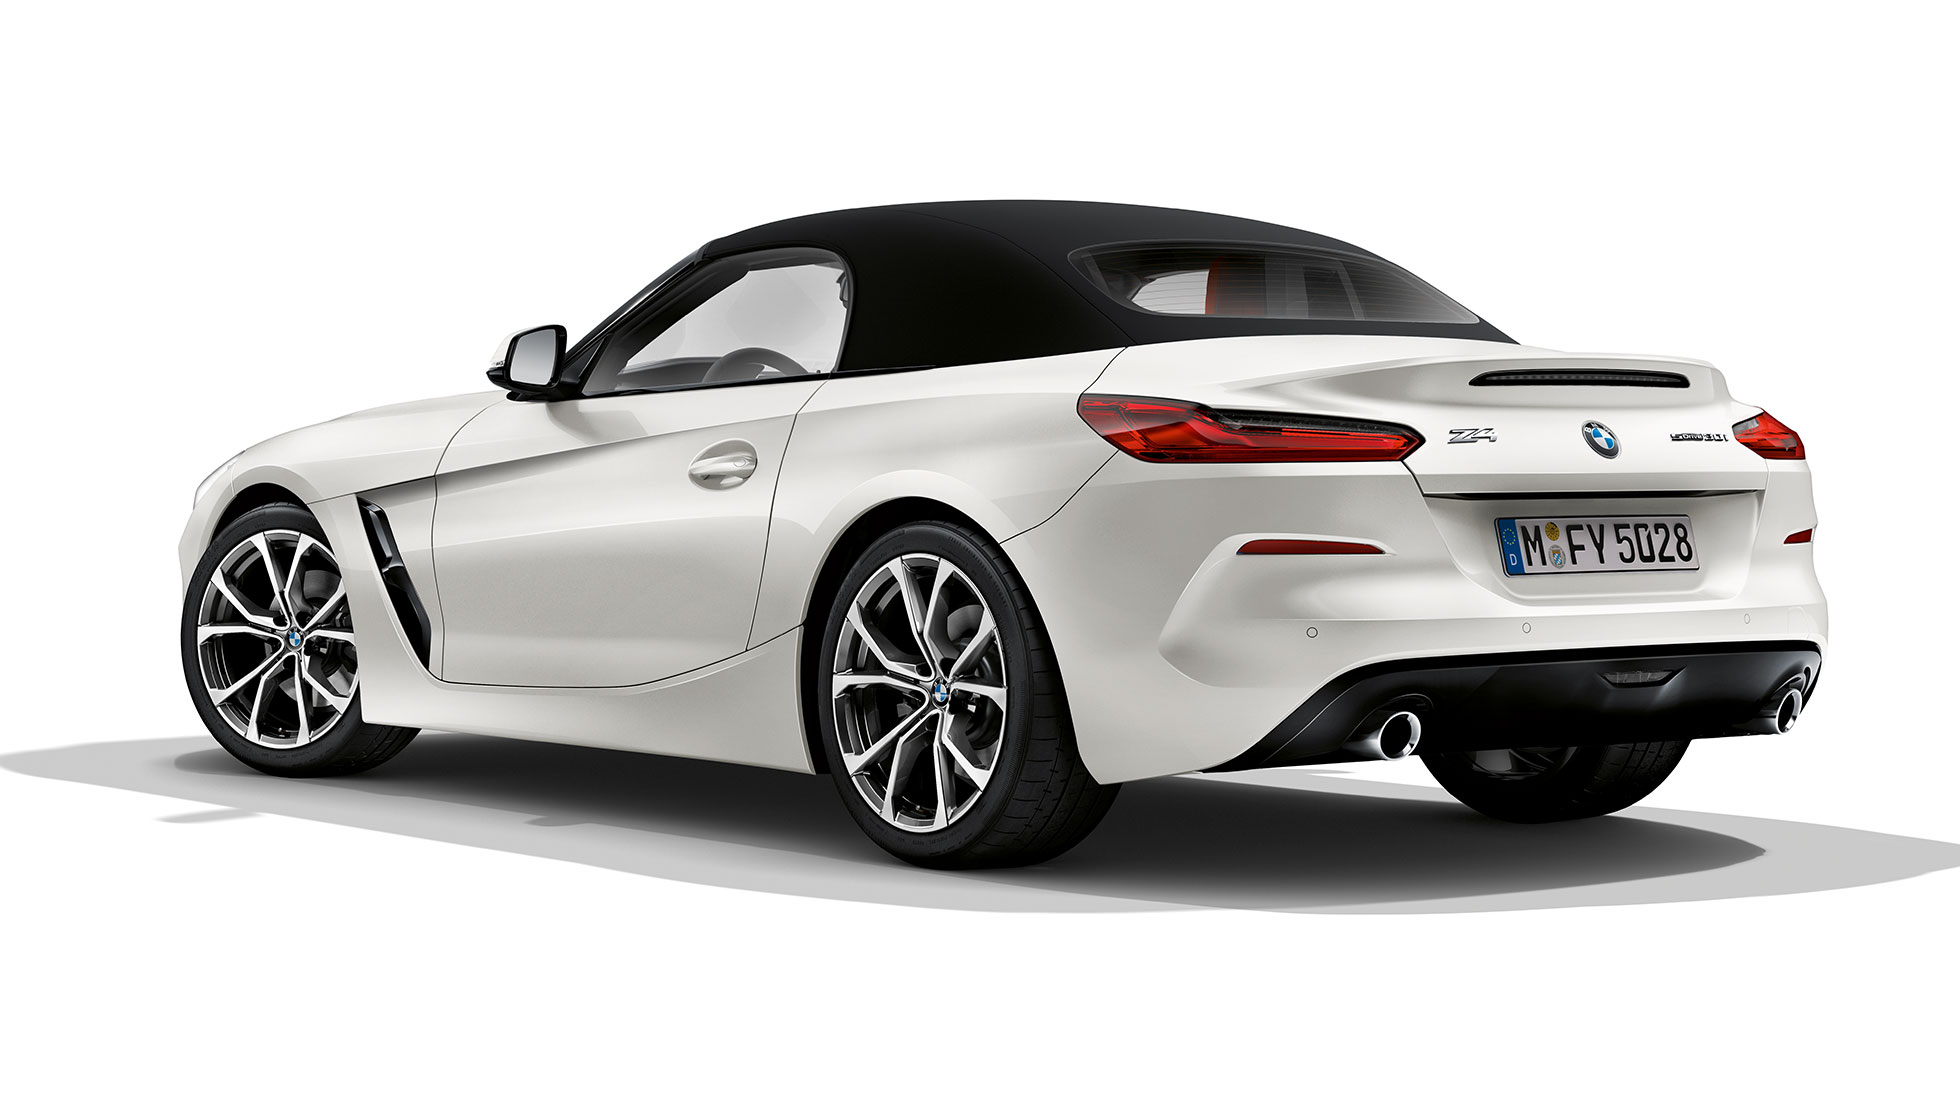 Bmw Z4 Roadster Information And Details